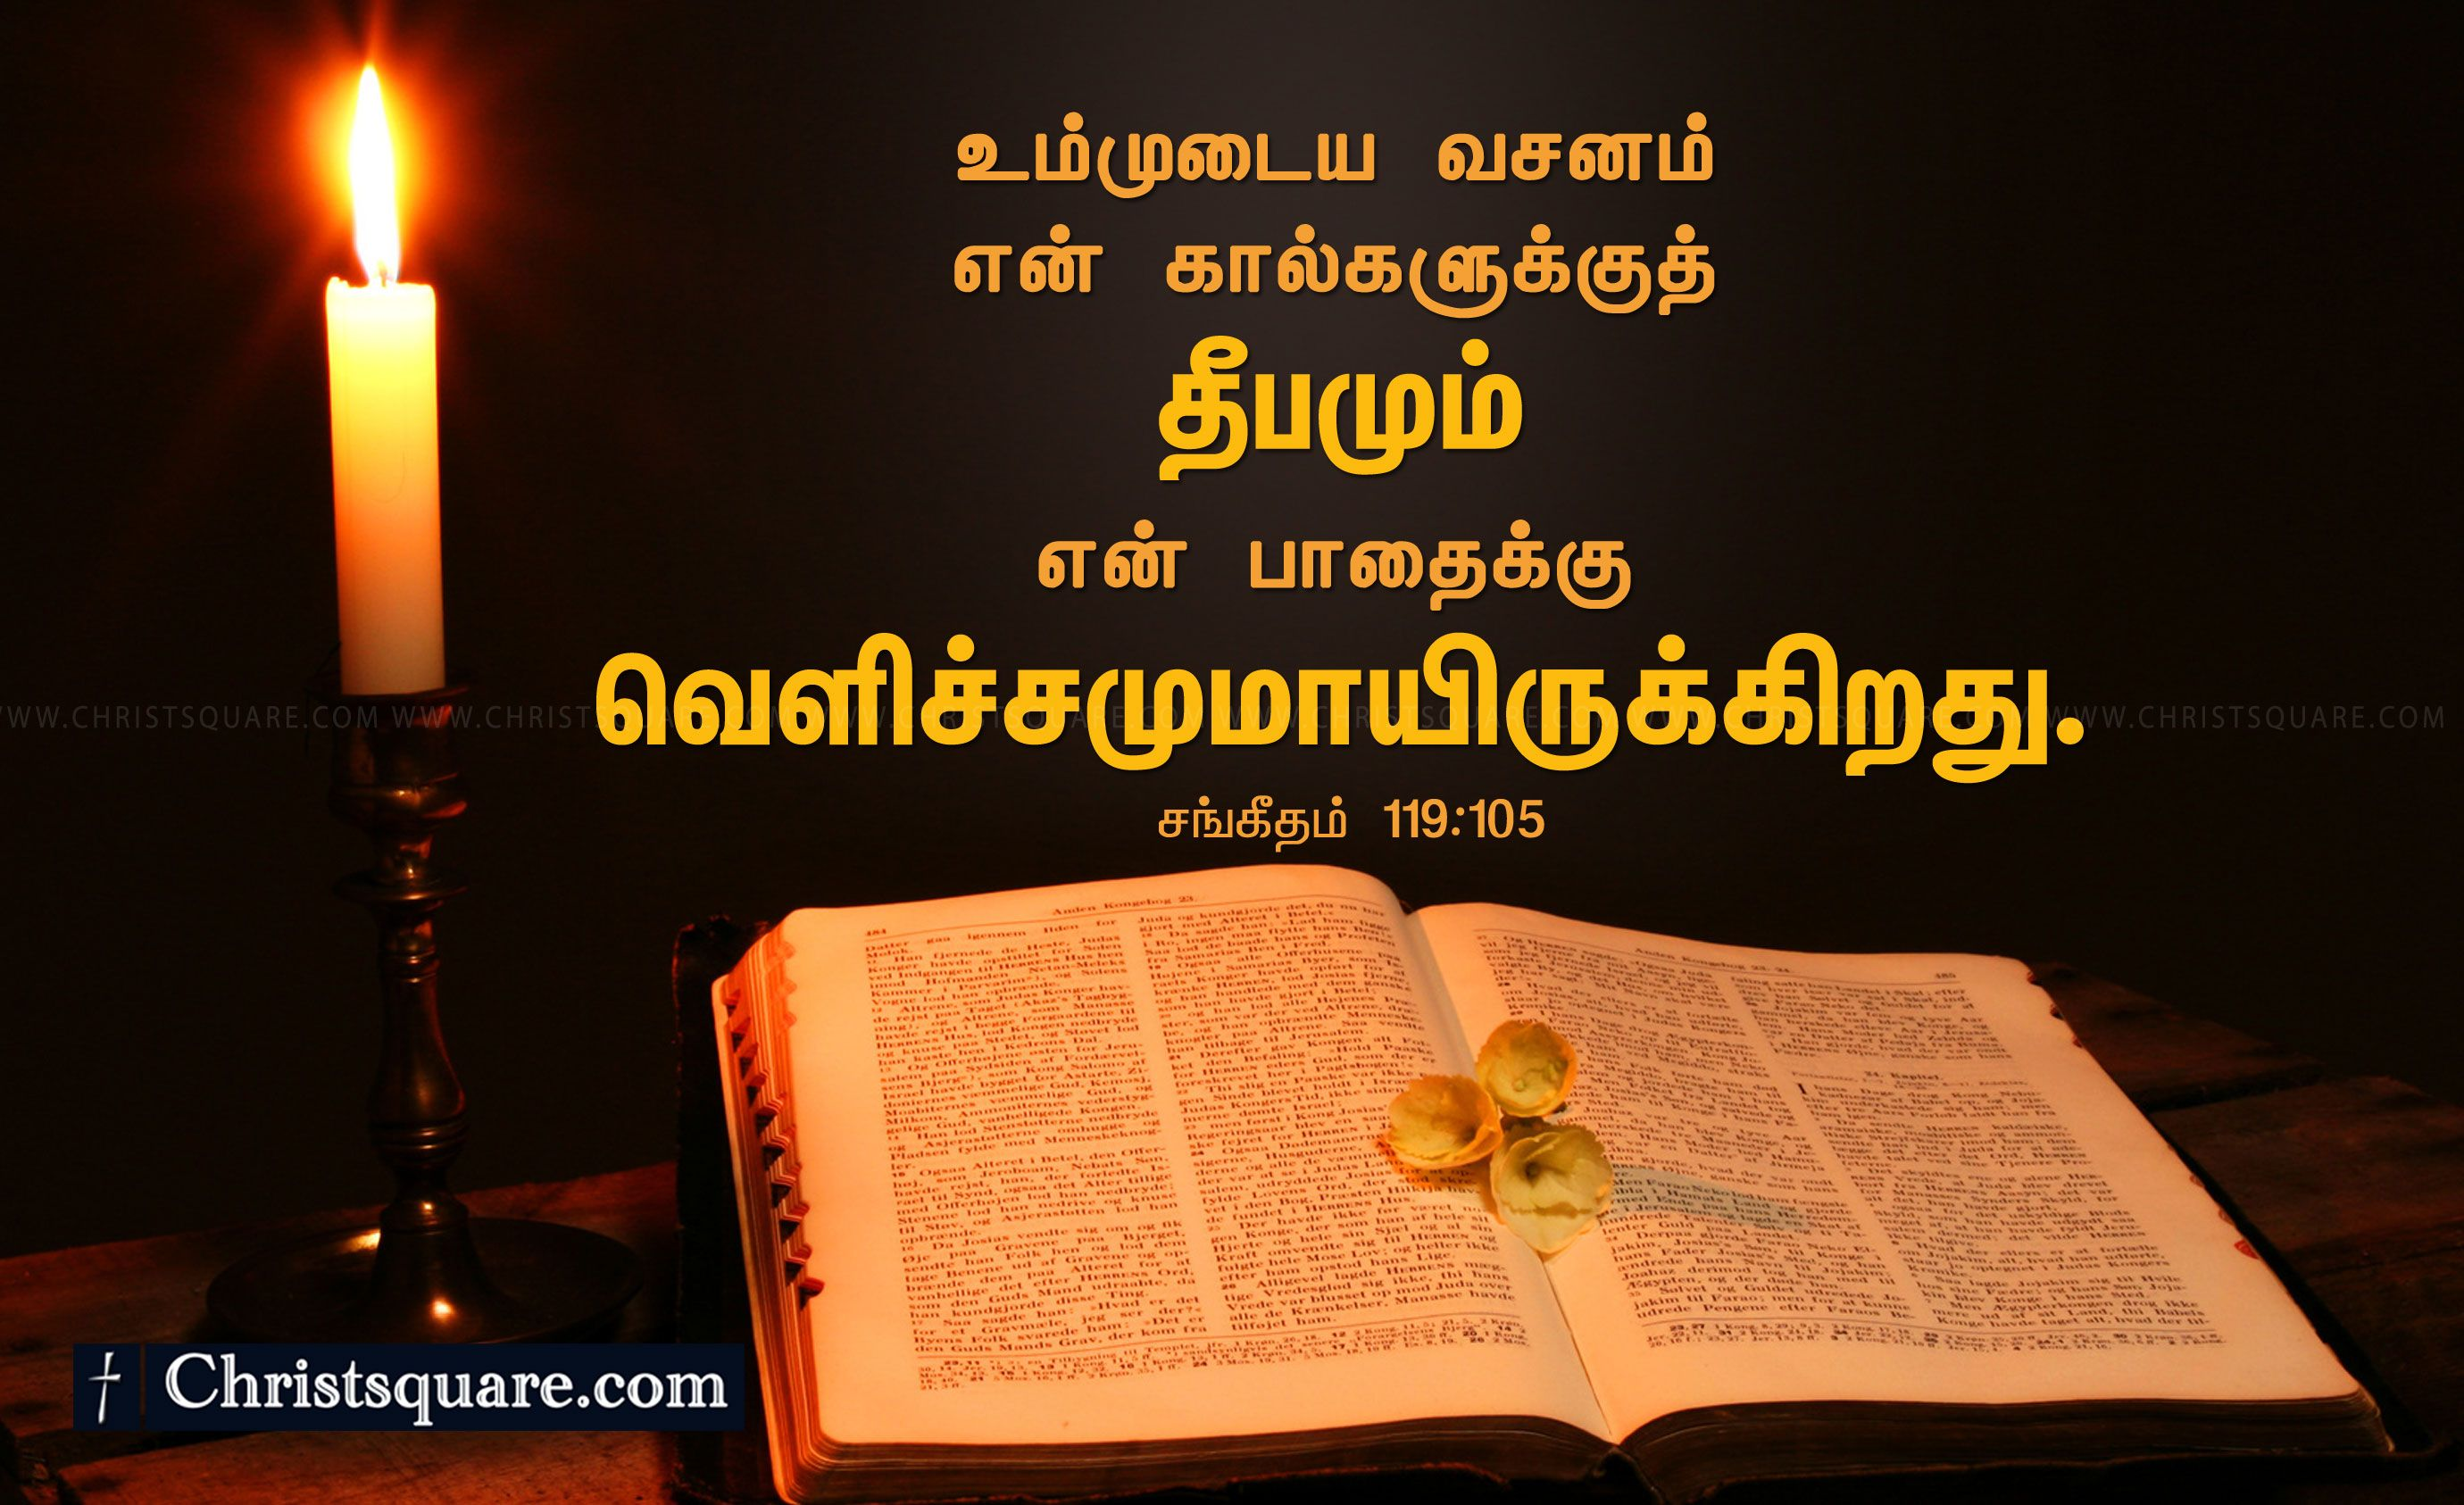 tamil bible words wallpapers - photo #27